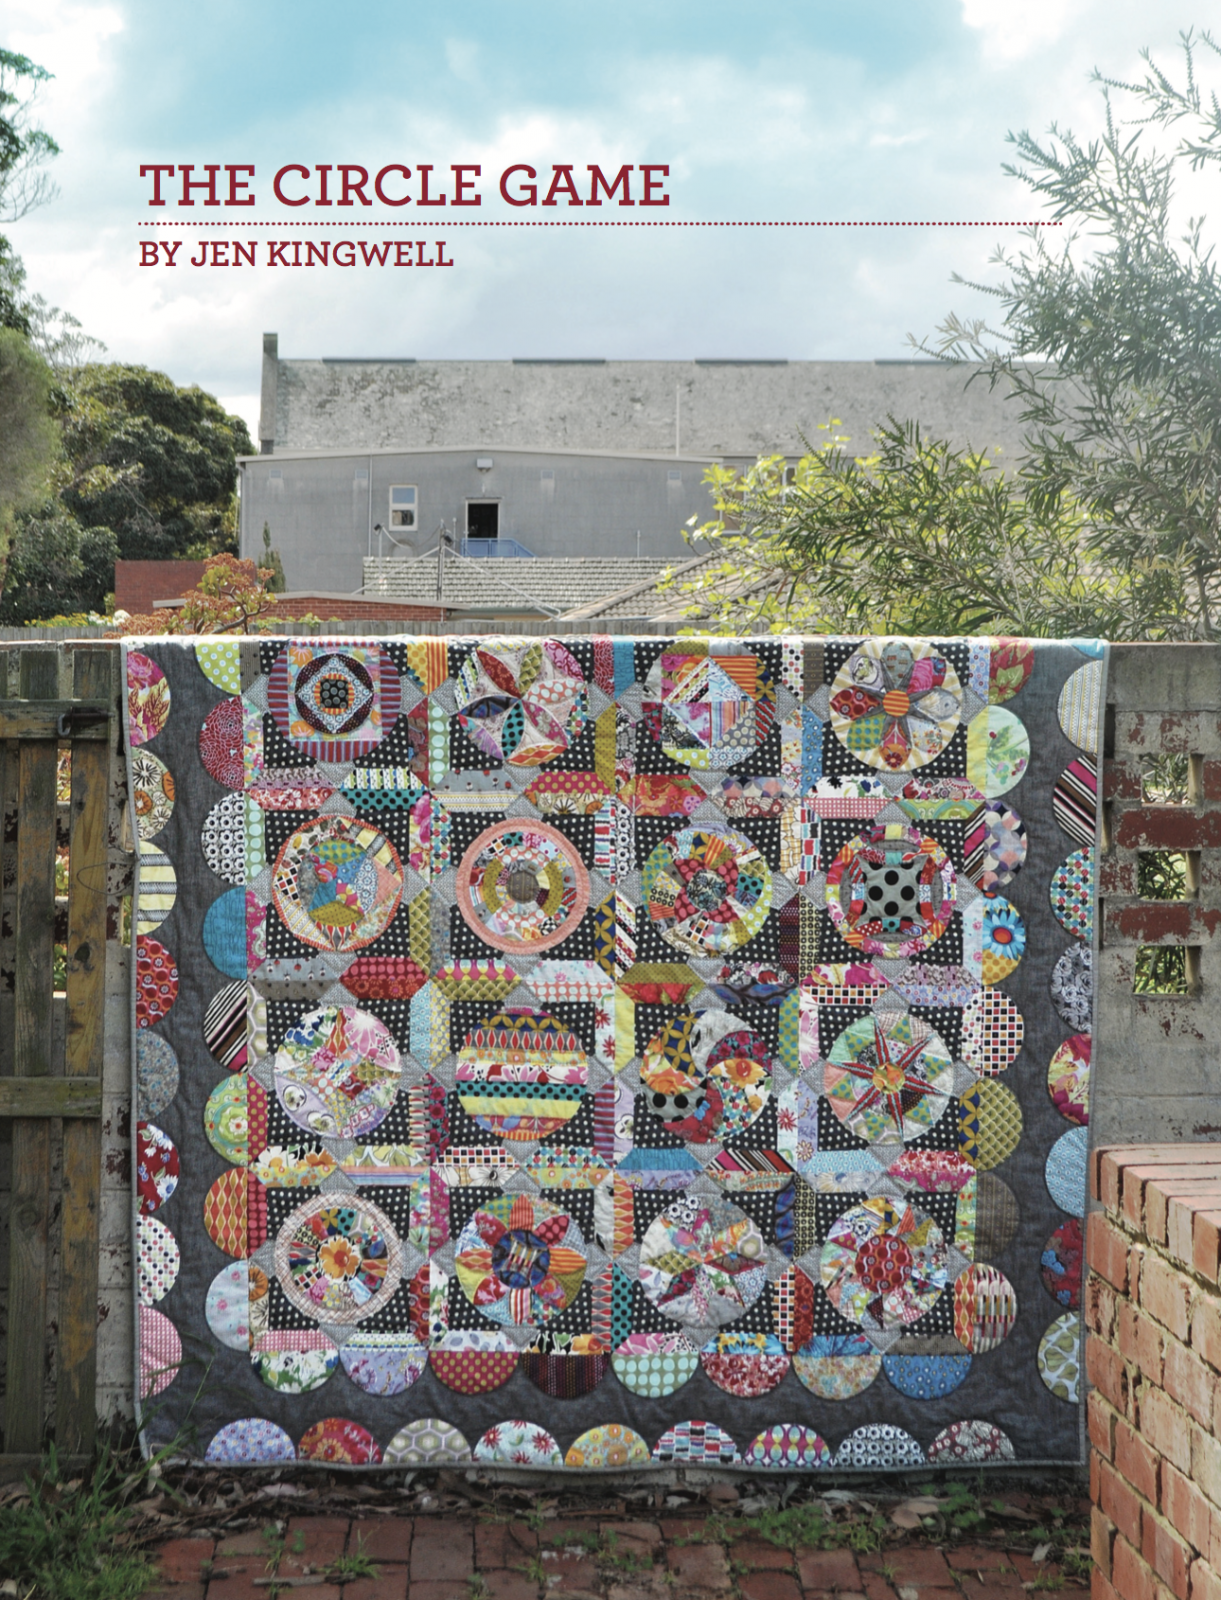 The Circle Game Booklet by Jen Kingwell